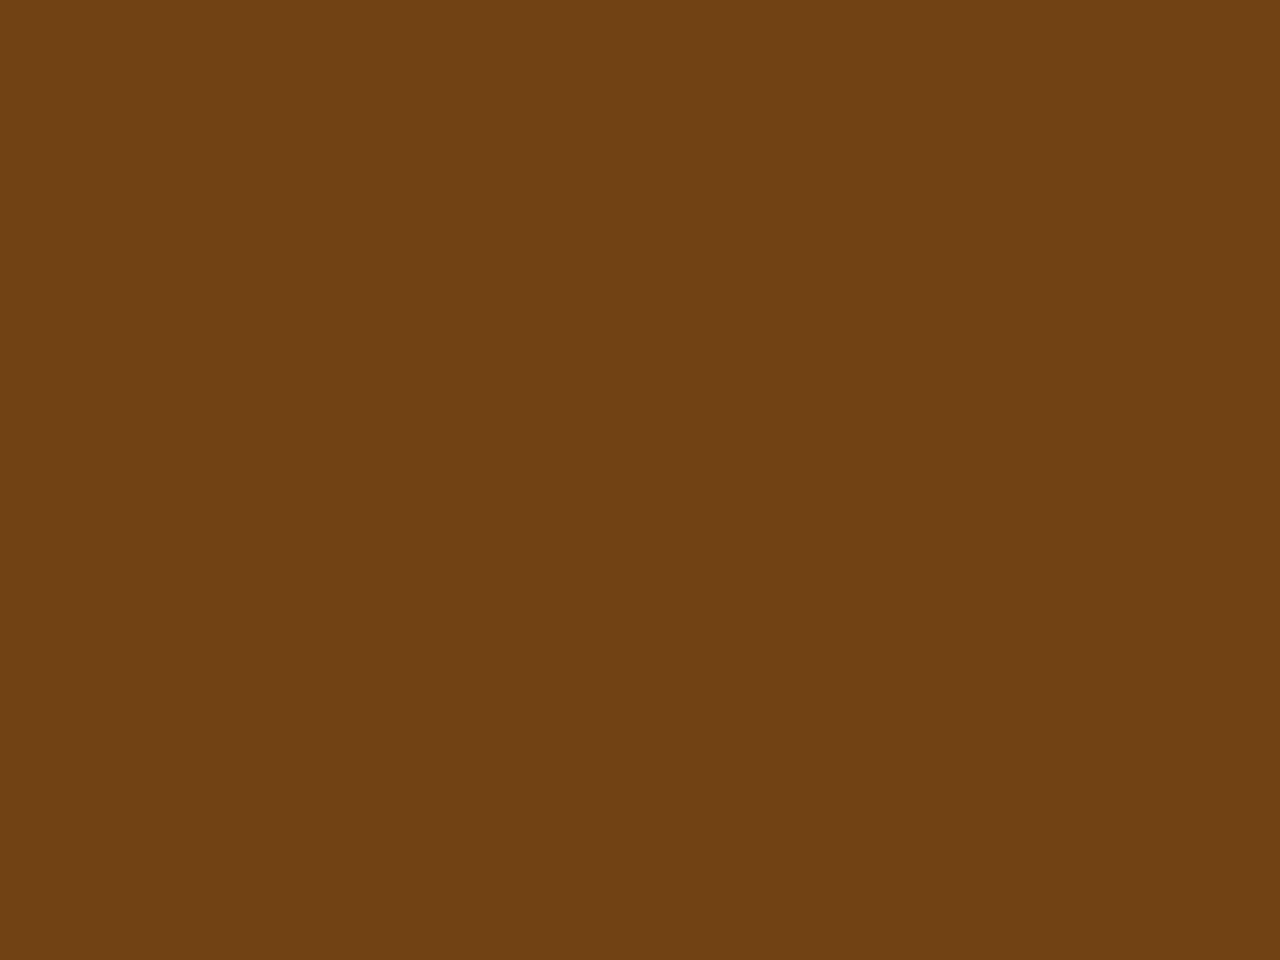 1280x960 Sepia Solid Color Background